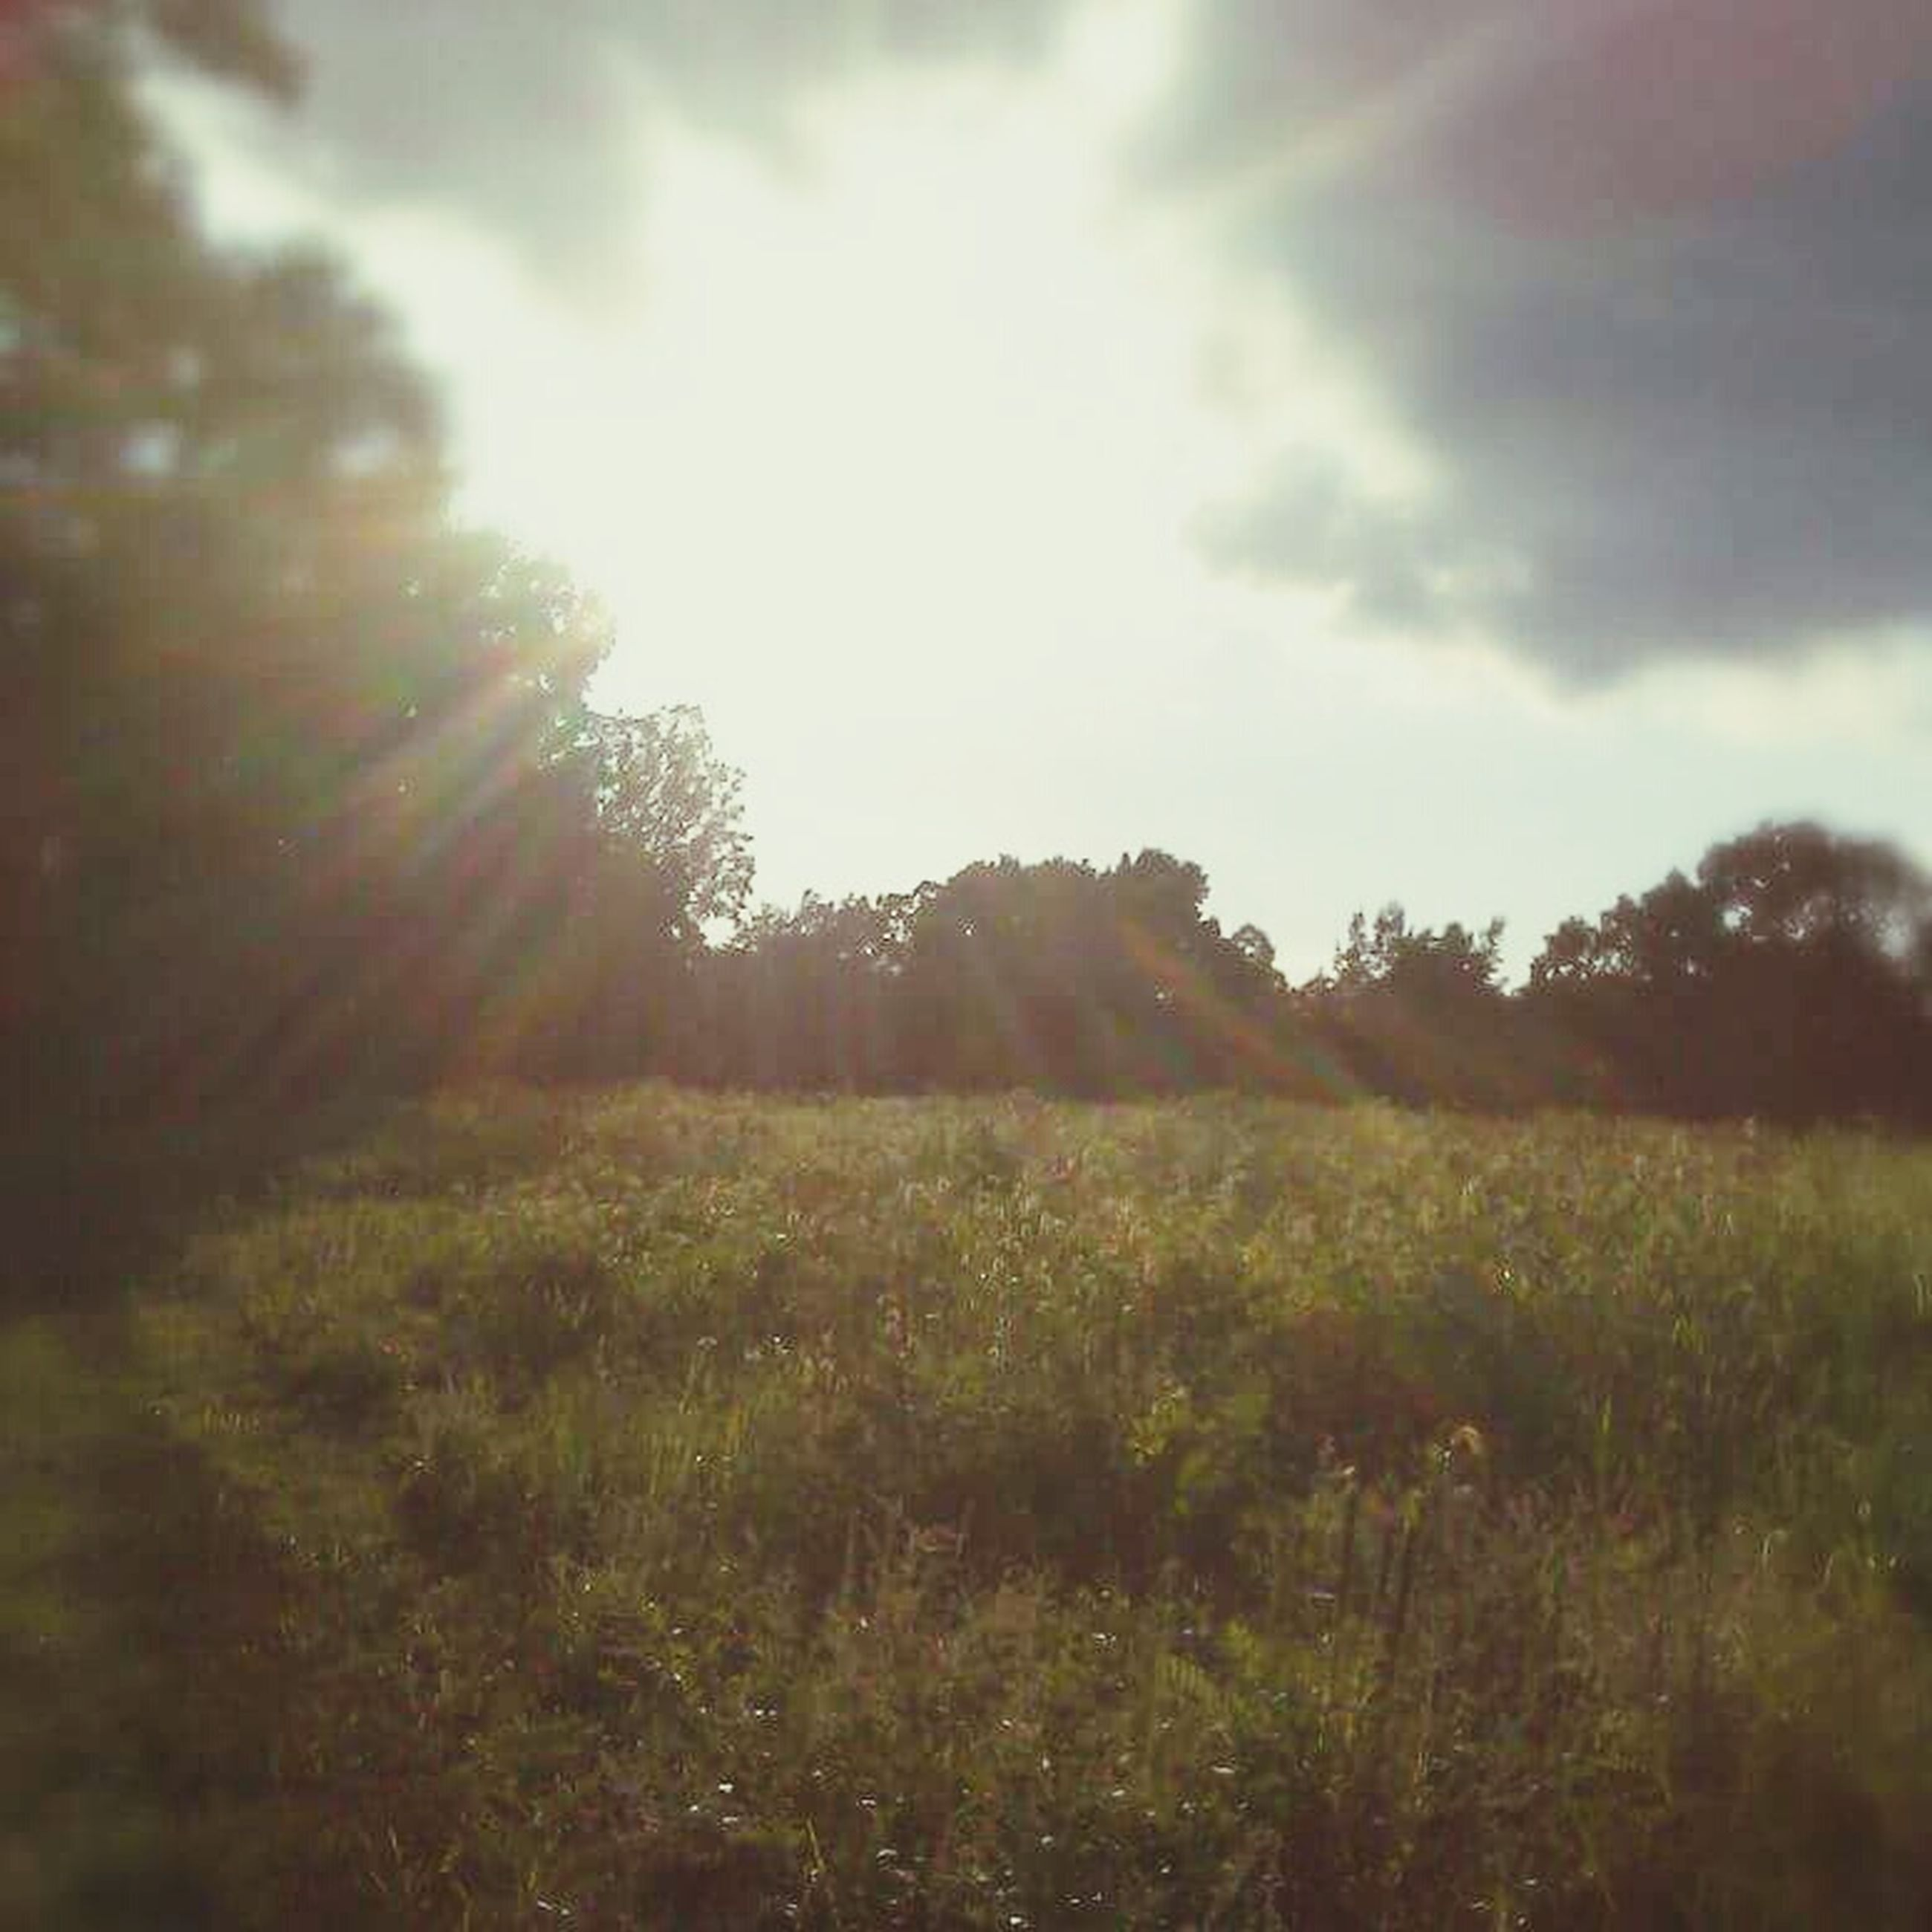 tree, tranquility, sky, growth, tranquil scene, sun, field, sunbeam, grass, nature, beauty in nature, sunlight, landscape, scenics, lens flare, cloud - sky, plant, grassy, non-urban scene, day